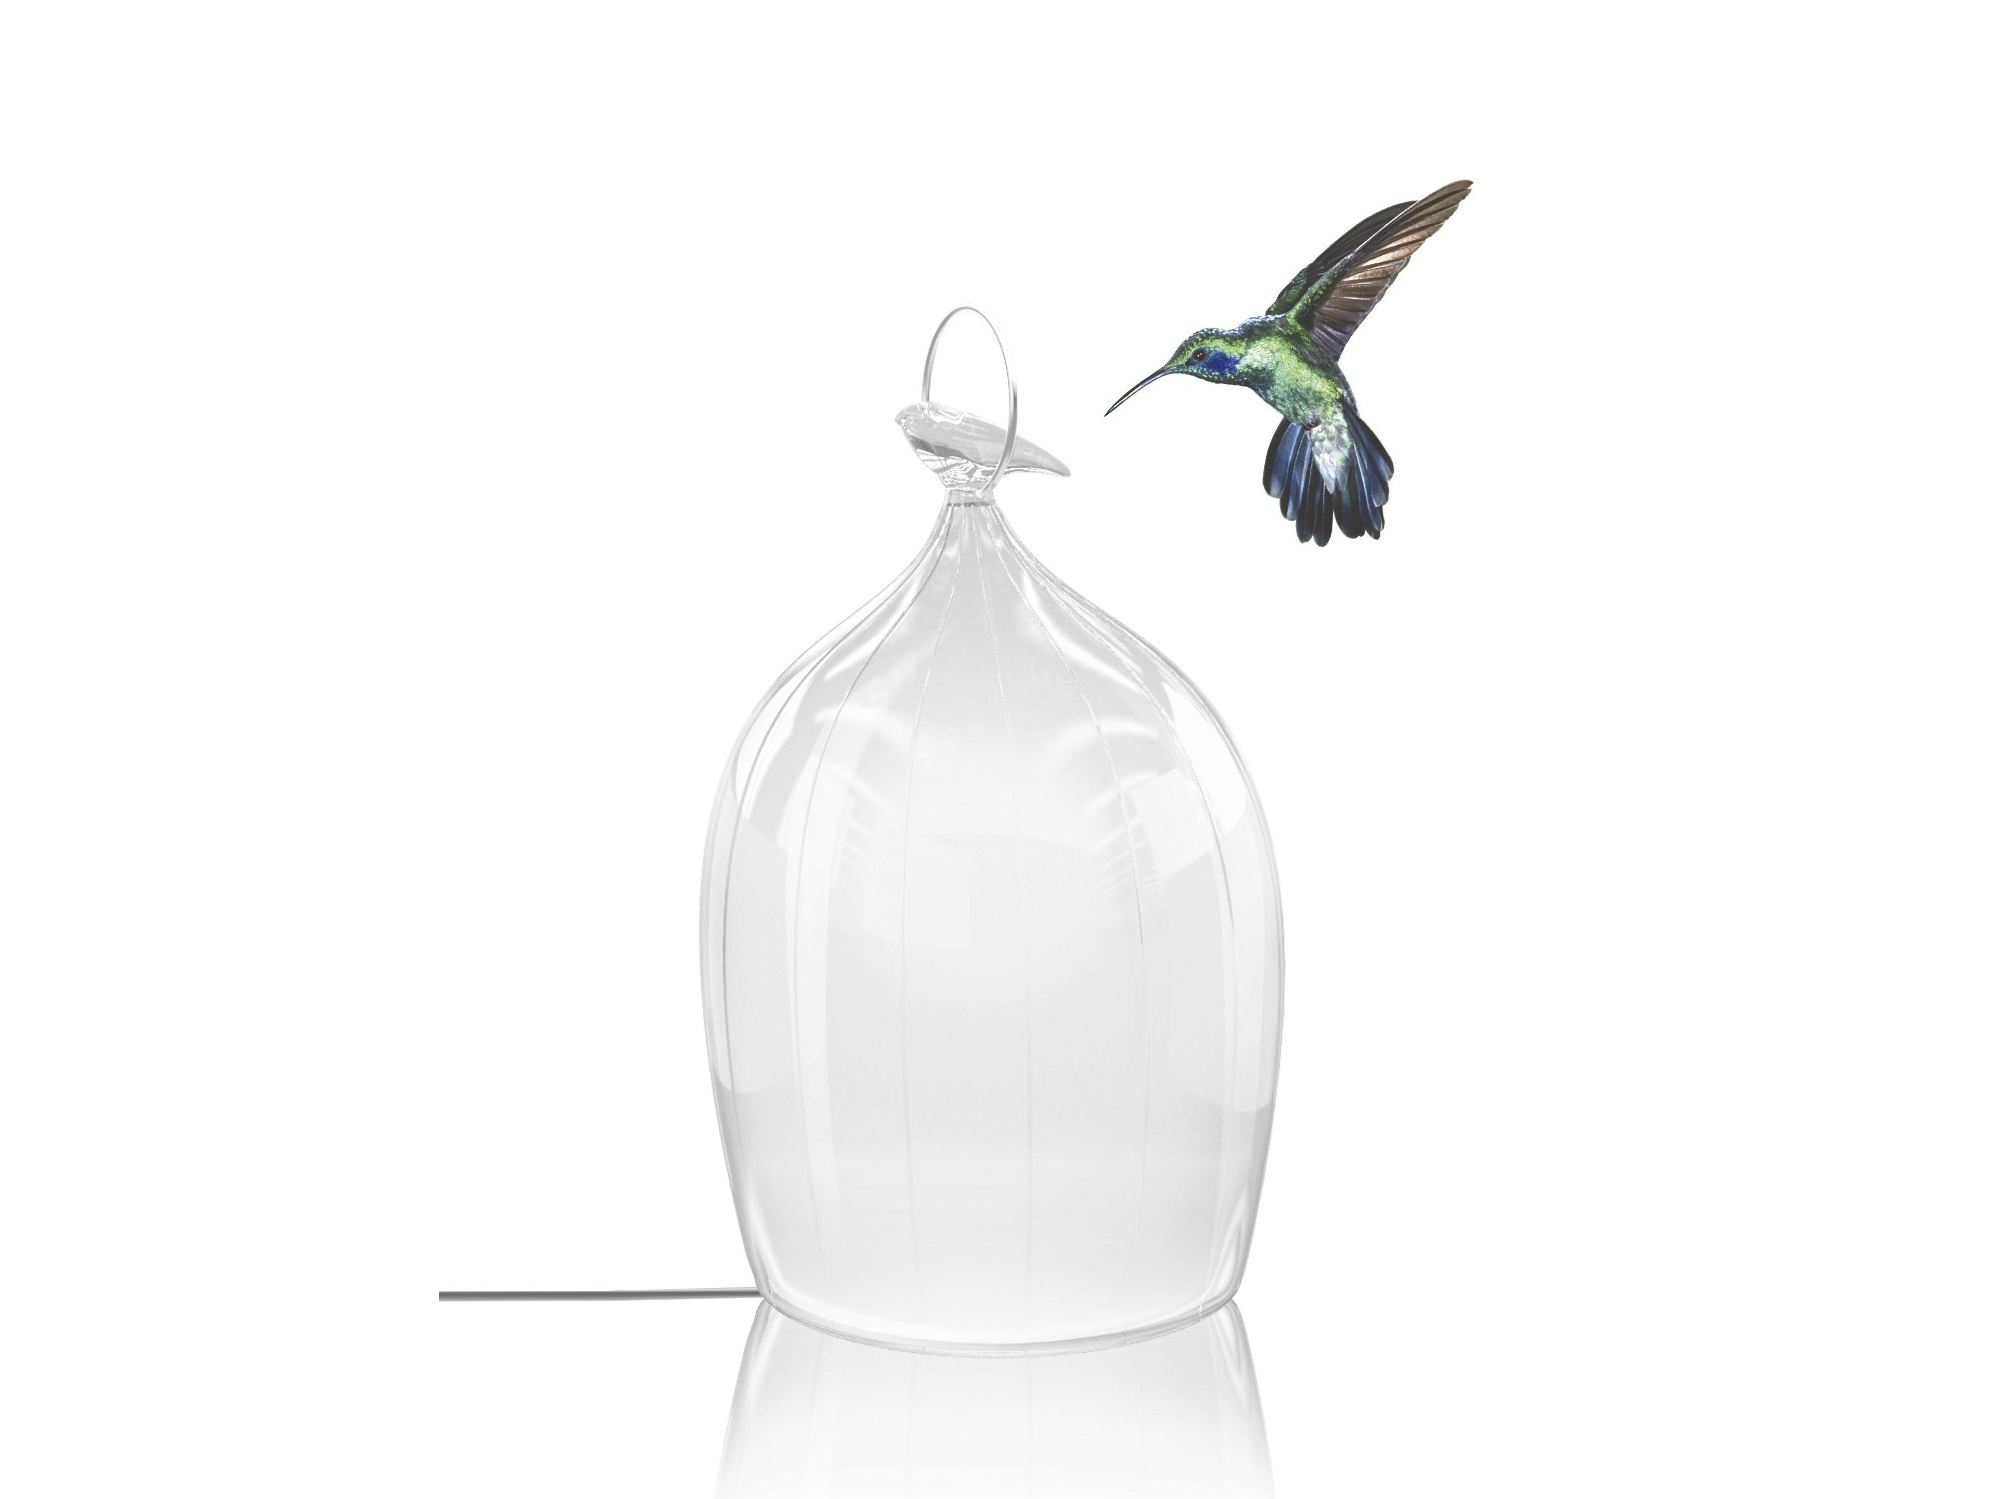 Beau Verre Lampe De Table En Verre Smoon Cage Glass By Beau And Bien